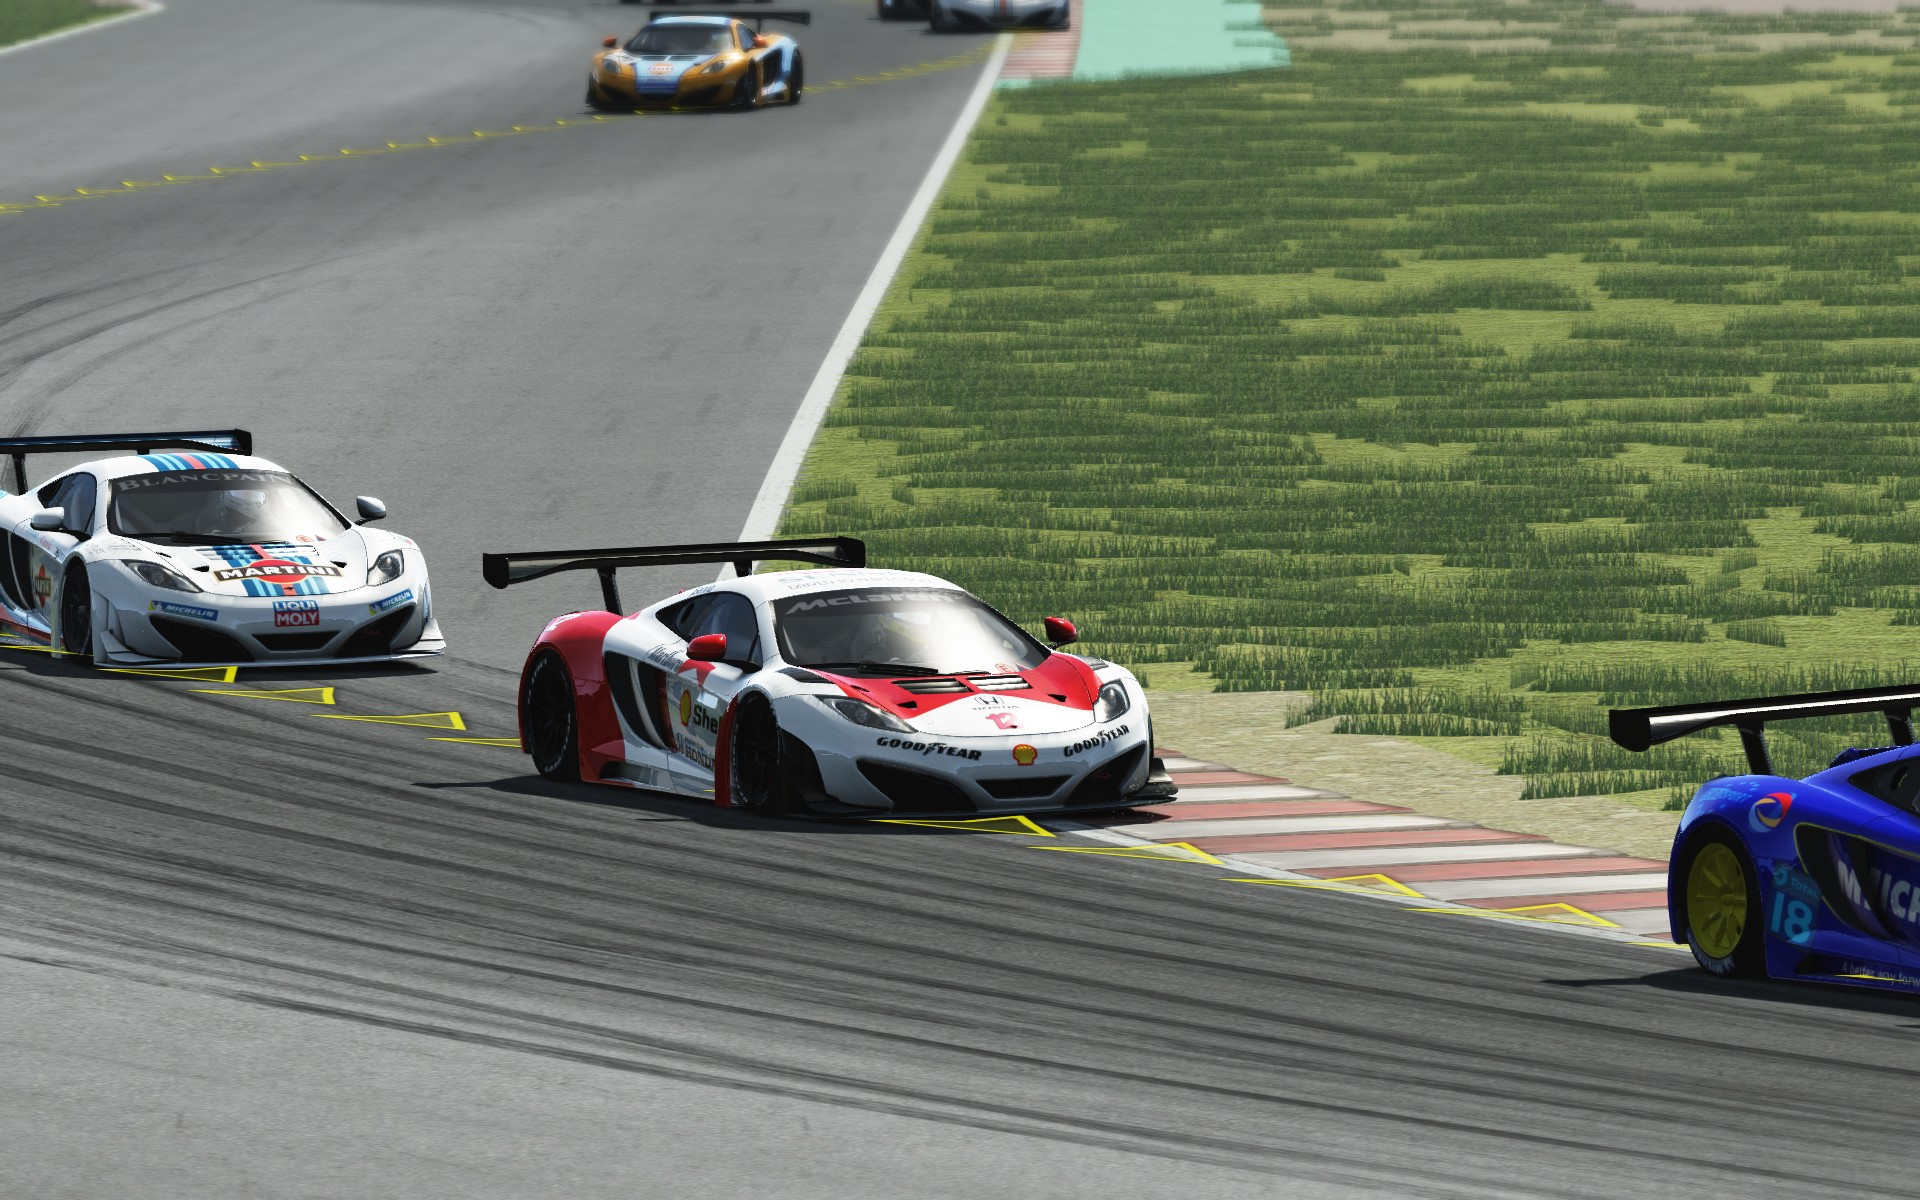 Screenshot_mclaren_mp412c_gt3_sentul_circuit_30-7-115-12-41-31.jpg